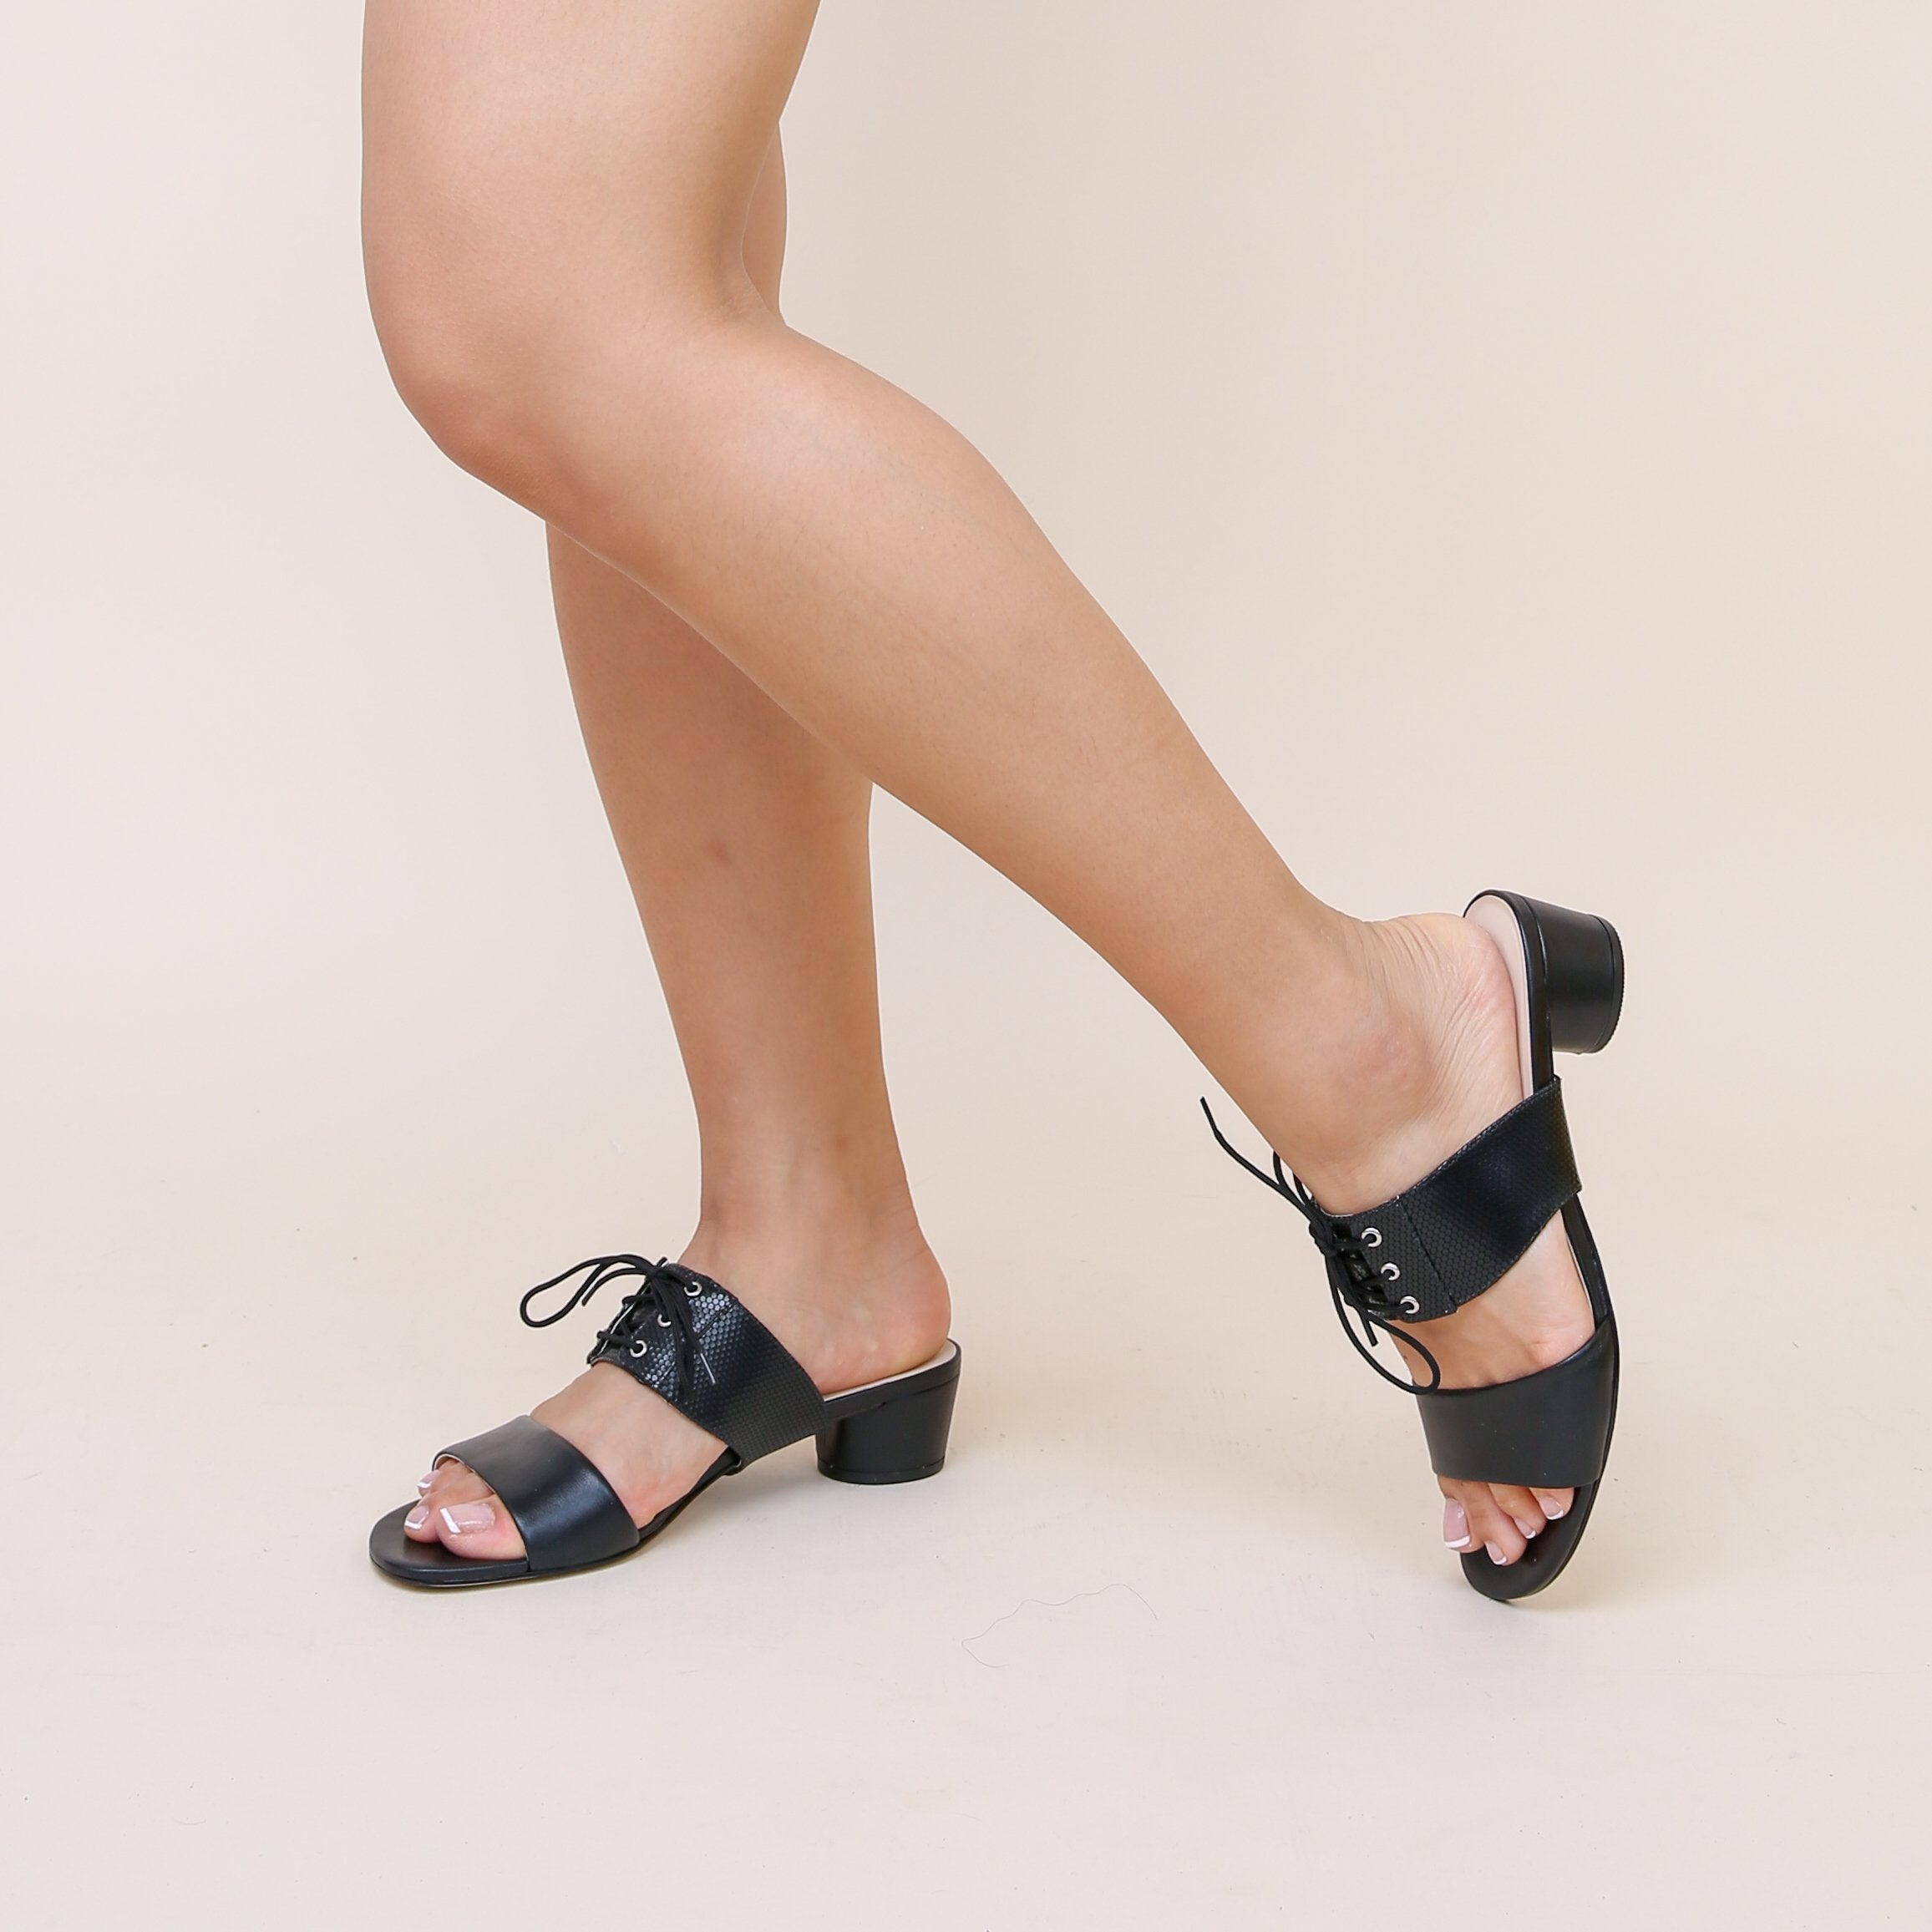 Black Personalized Womens Sandals + Rattlesnake Tilda Strap | Alterre Create Your Own Sandal - Sustainable Footwear Brand & Ethical Shoe Company